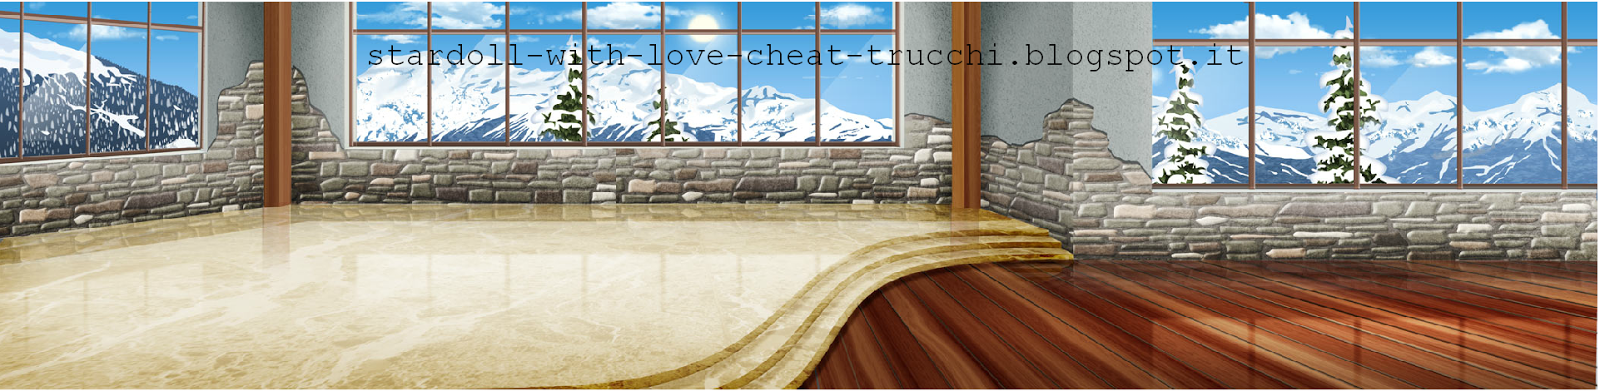 Stardoll with love trucchi cheat gratis other interni for Interni chalet